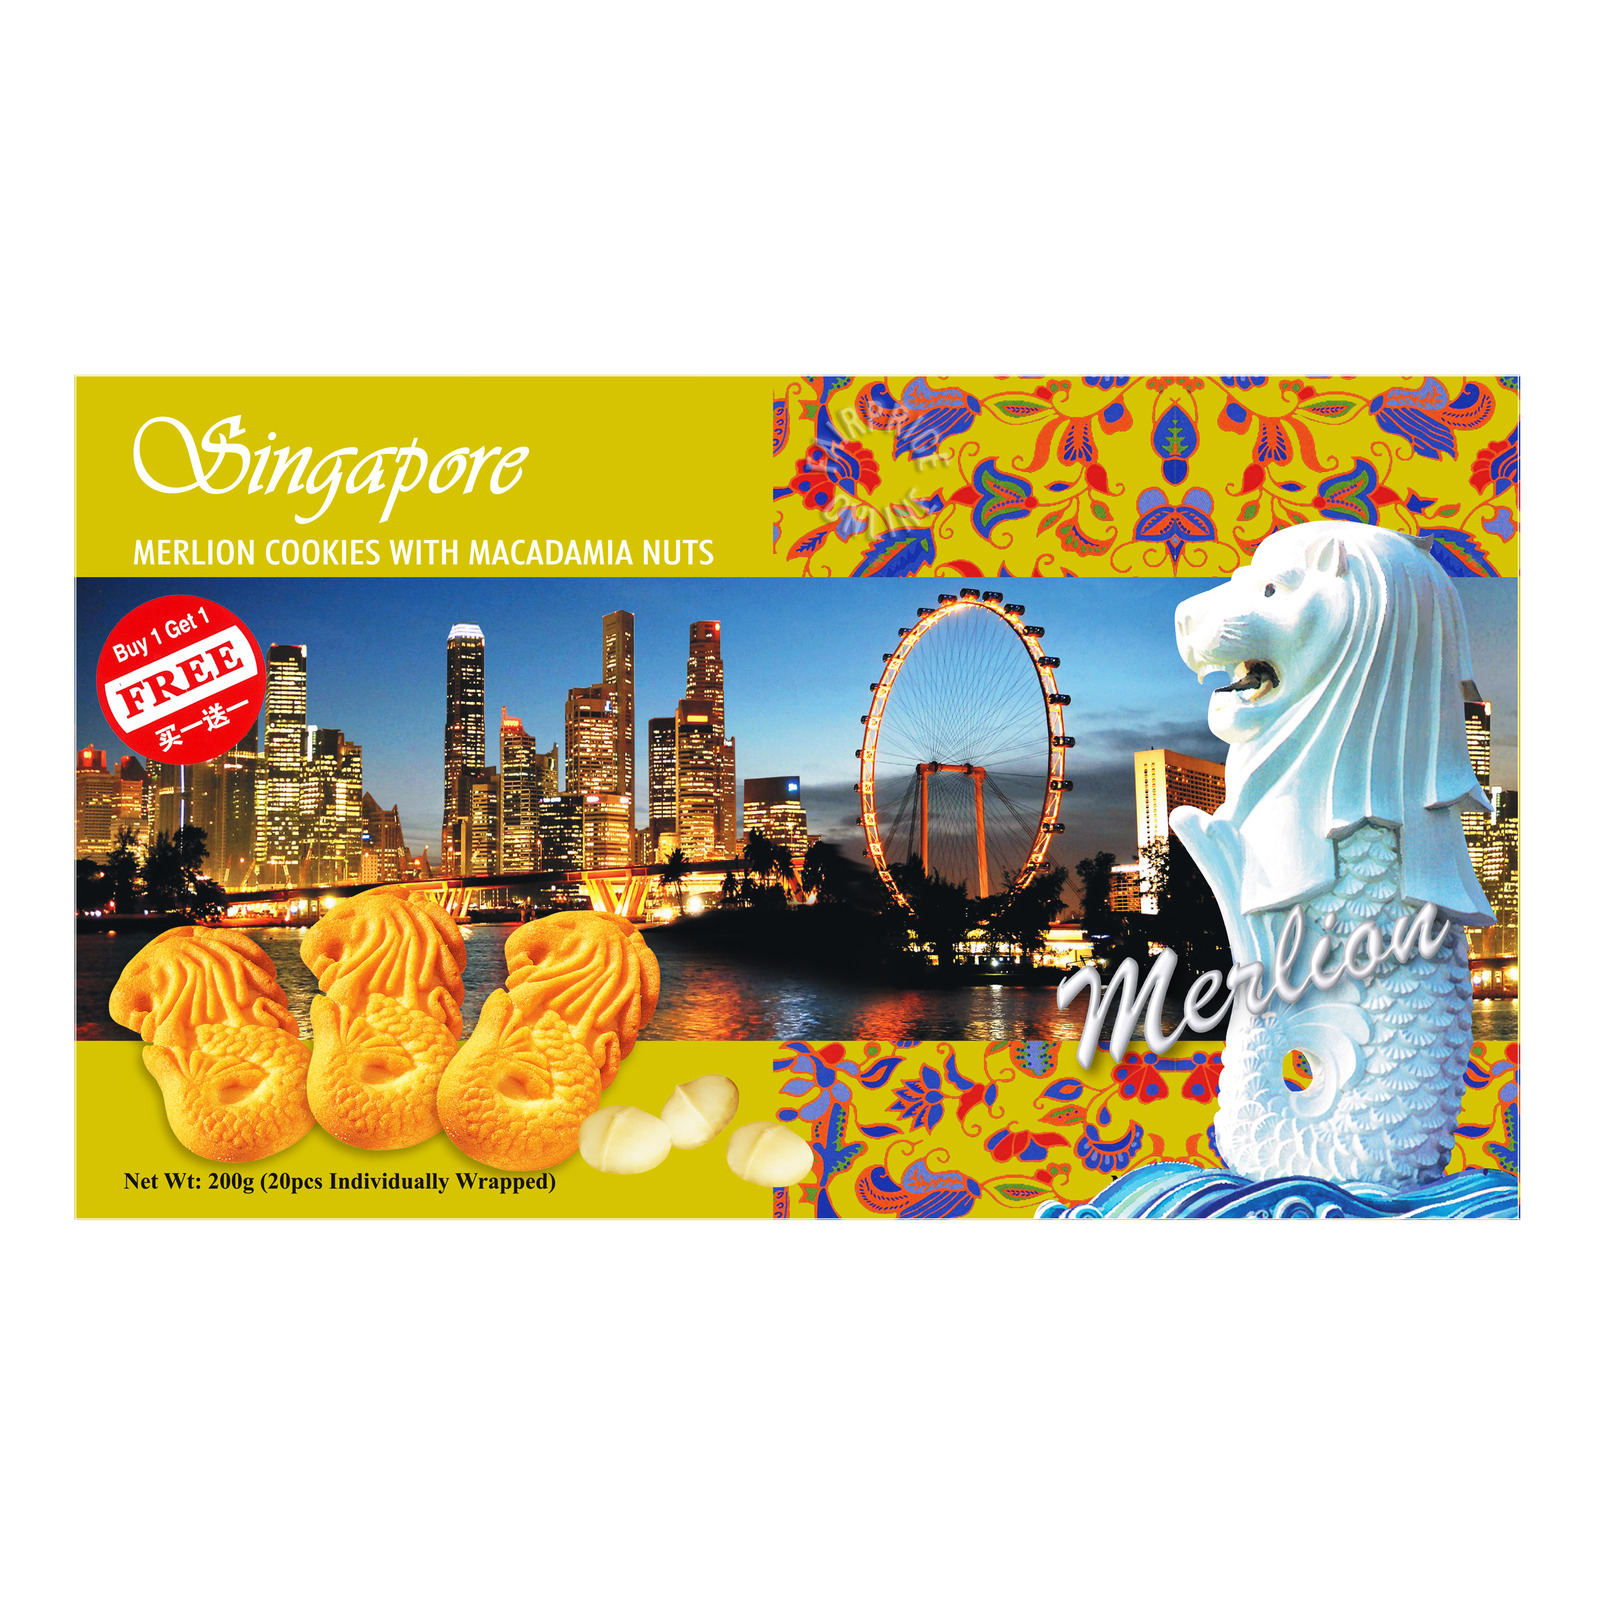 Manly Singapore Merlion Cookies - Macadamia Nuts